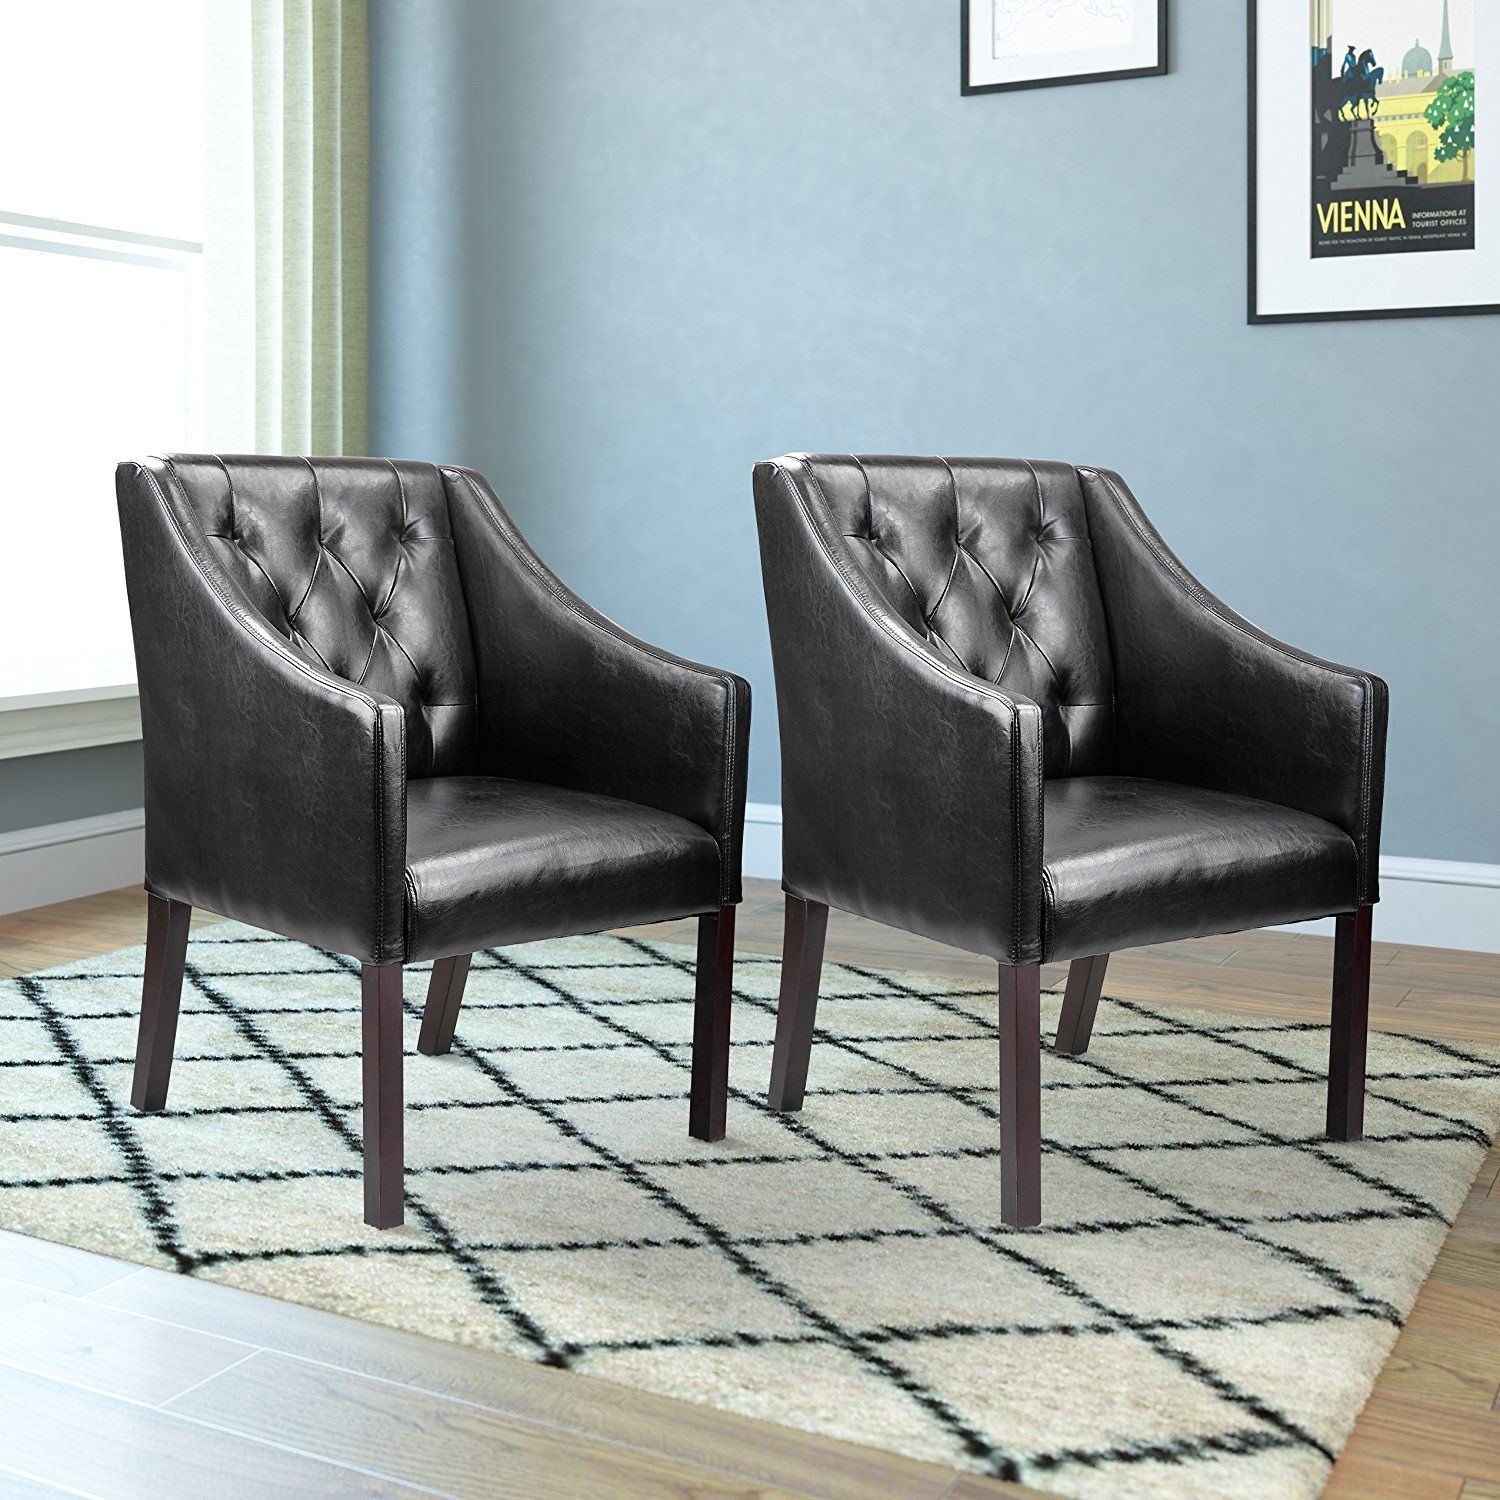 with nice cheap in space chair chairs furniture accent small arms for leather